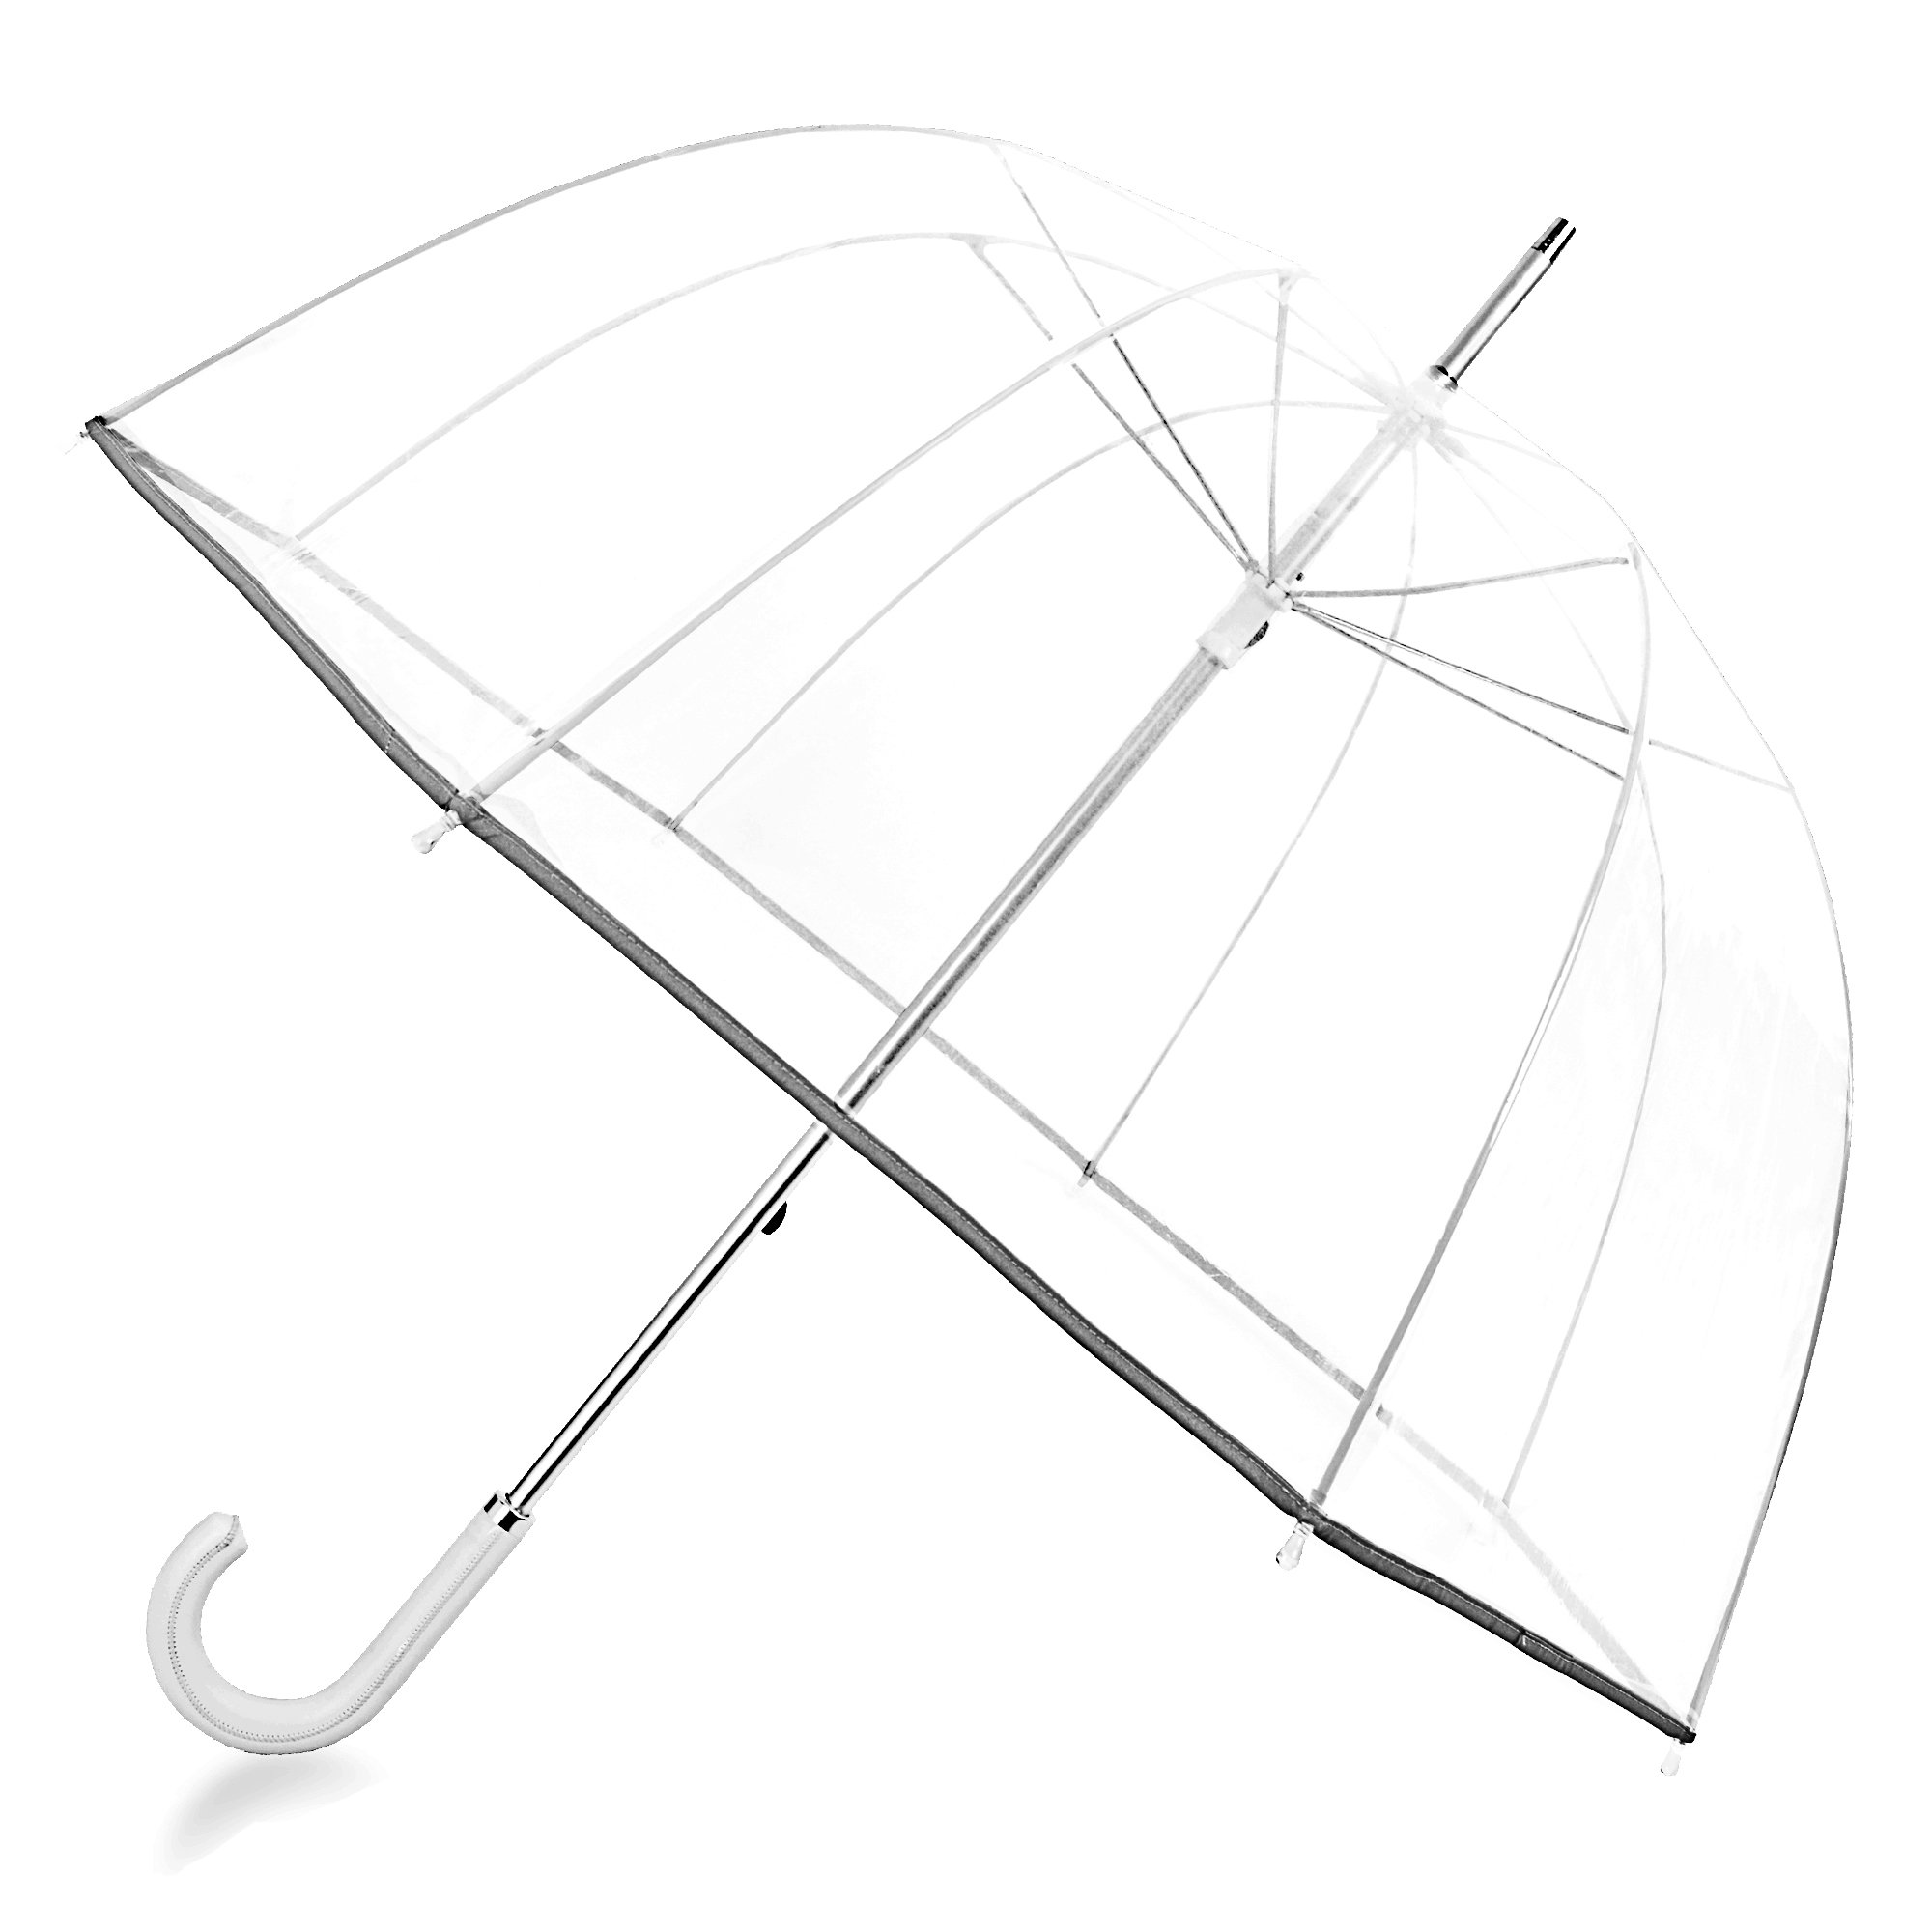 Kung Fu Smith 52 Inch Bubble Clear Umbrella for Weddings, Bulk Large Adult Windproof Dome Rain Umbrella by Kung Fu Smith